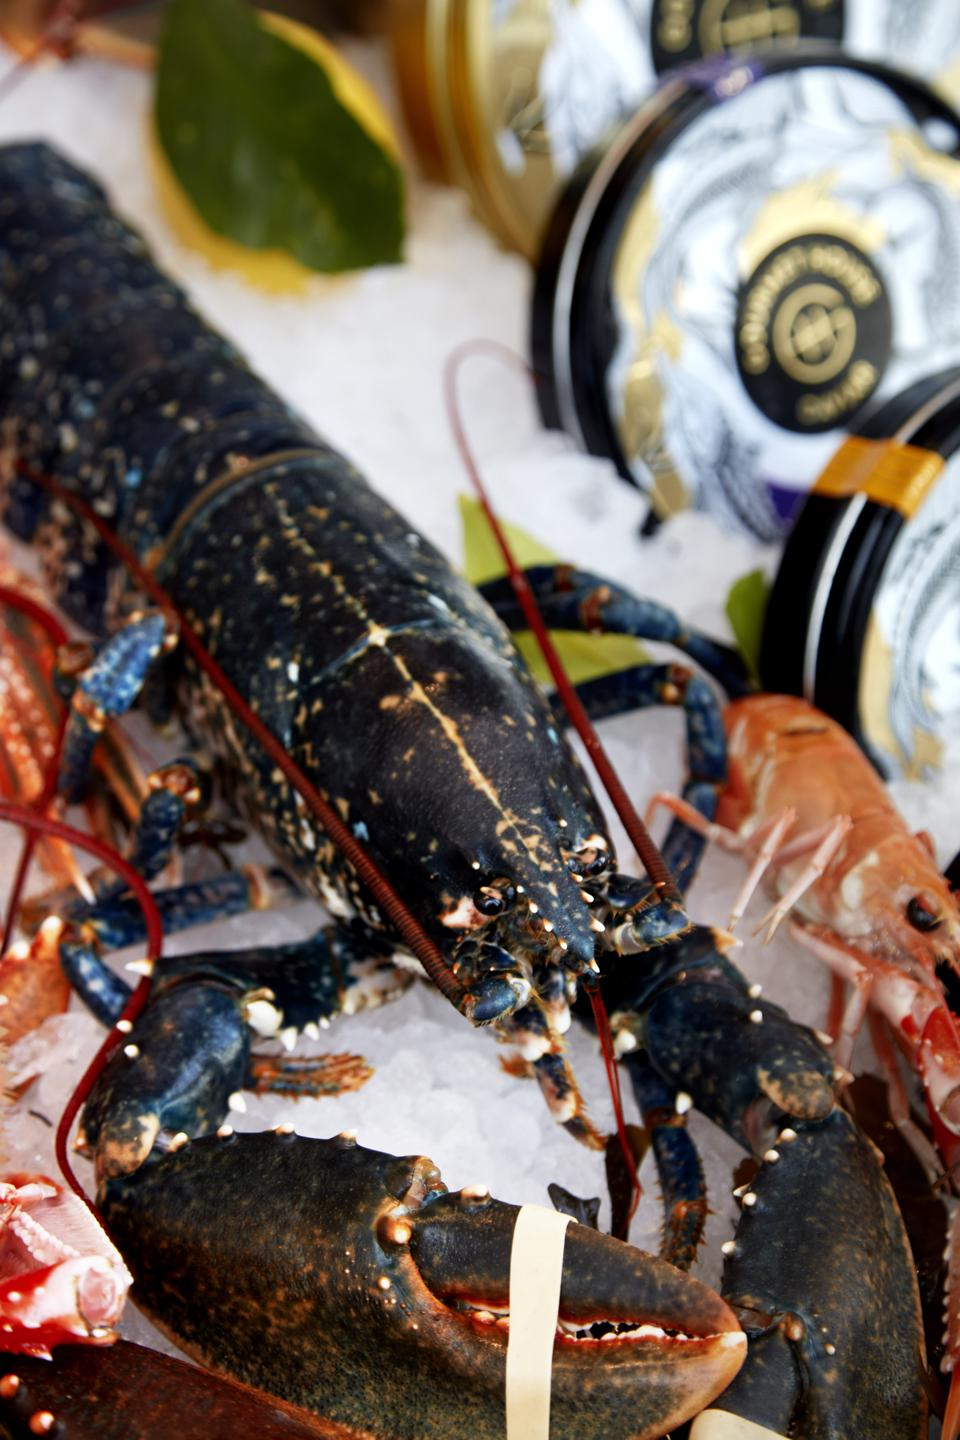 Lobster at the Notting Hill Fish Shop